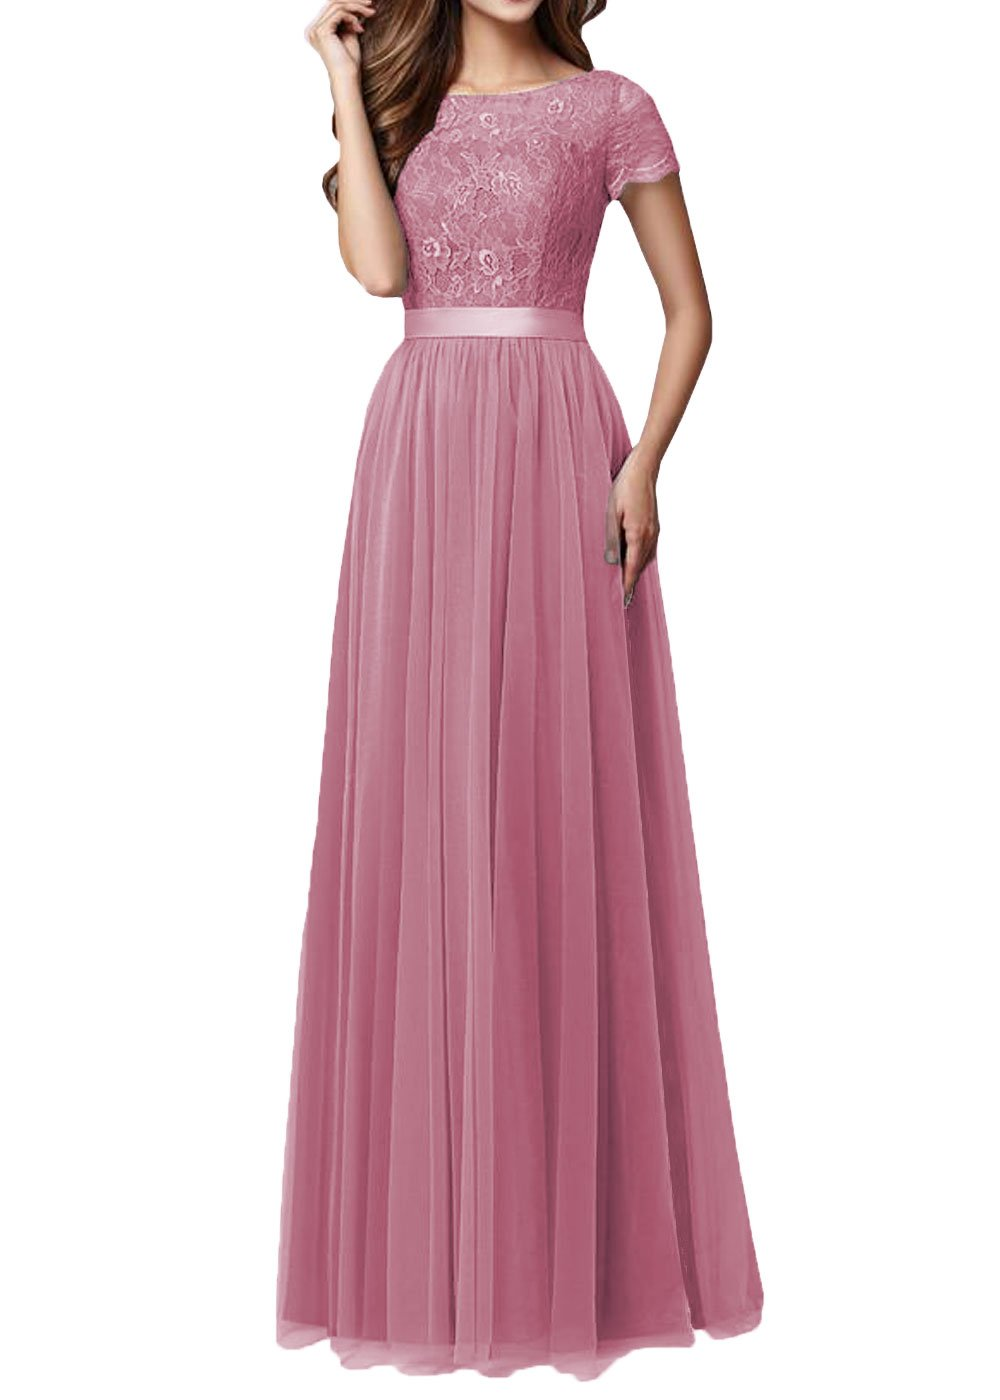 DYS Women's Lace Bridesmaid Dress Sleeves Tulle Prom Evening Dresses Long Blush US 8